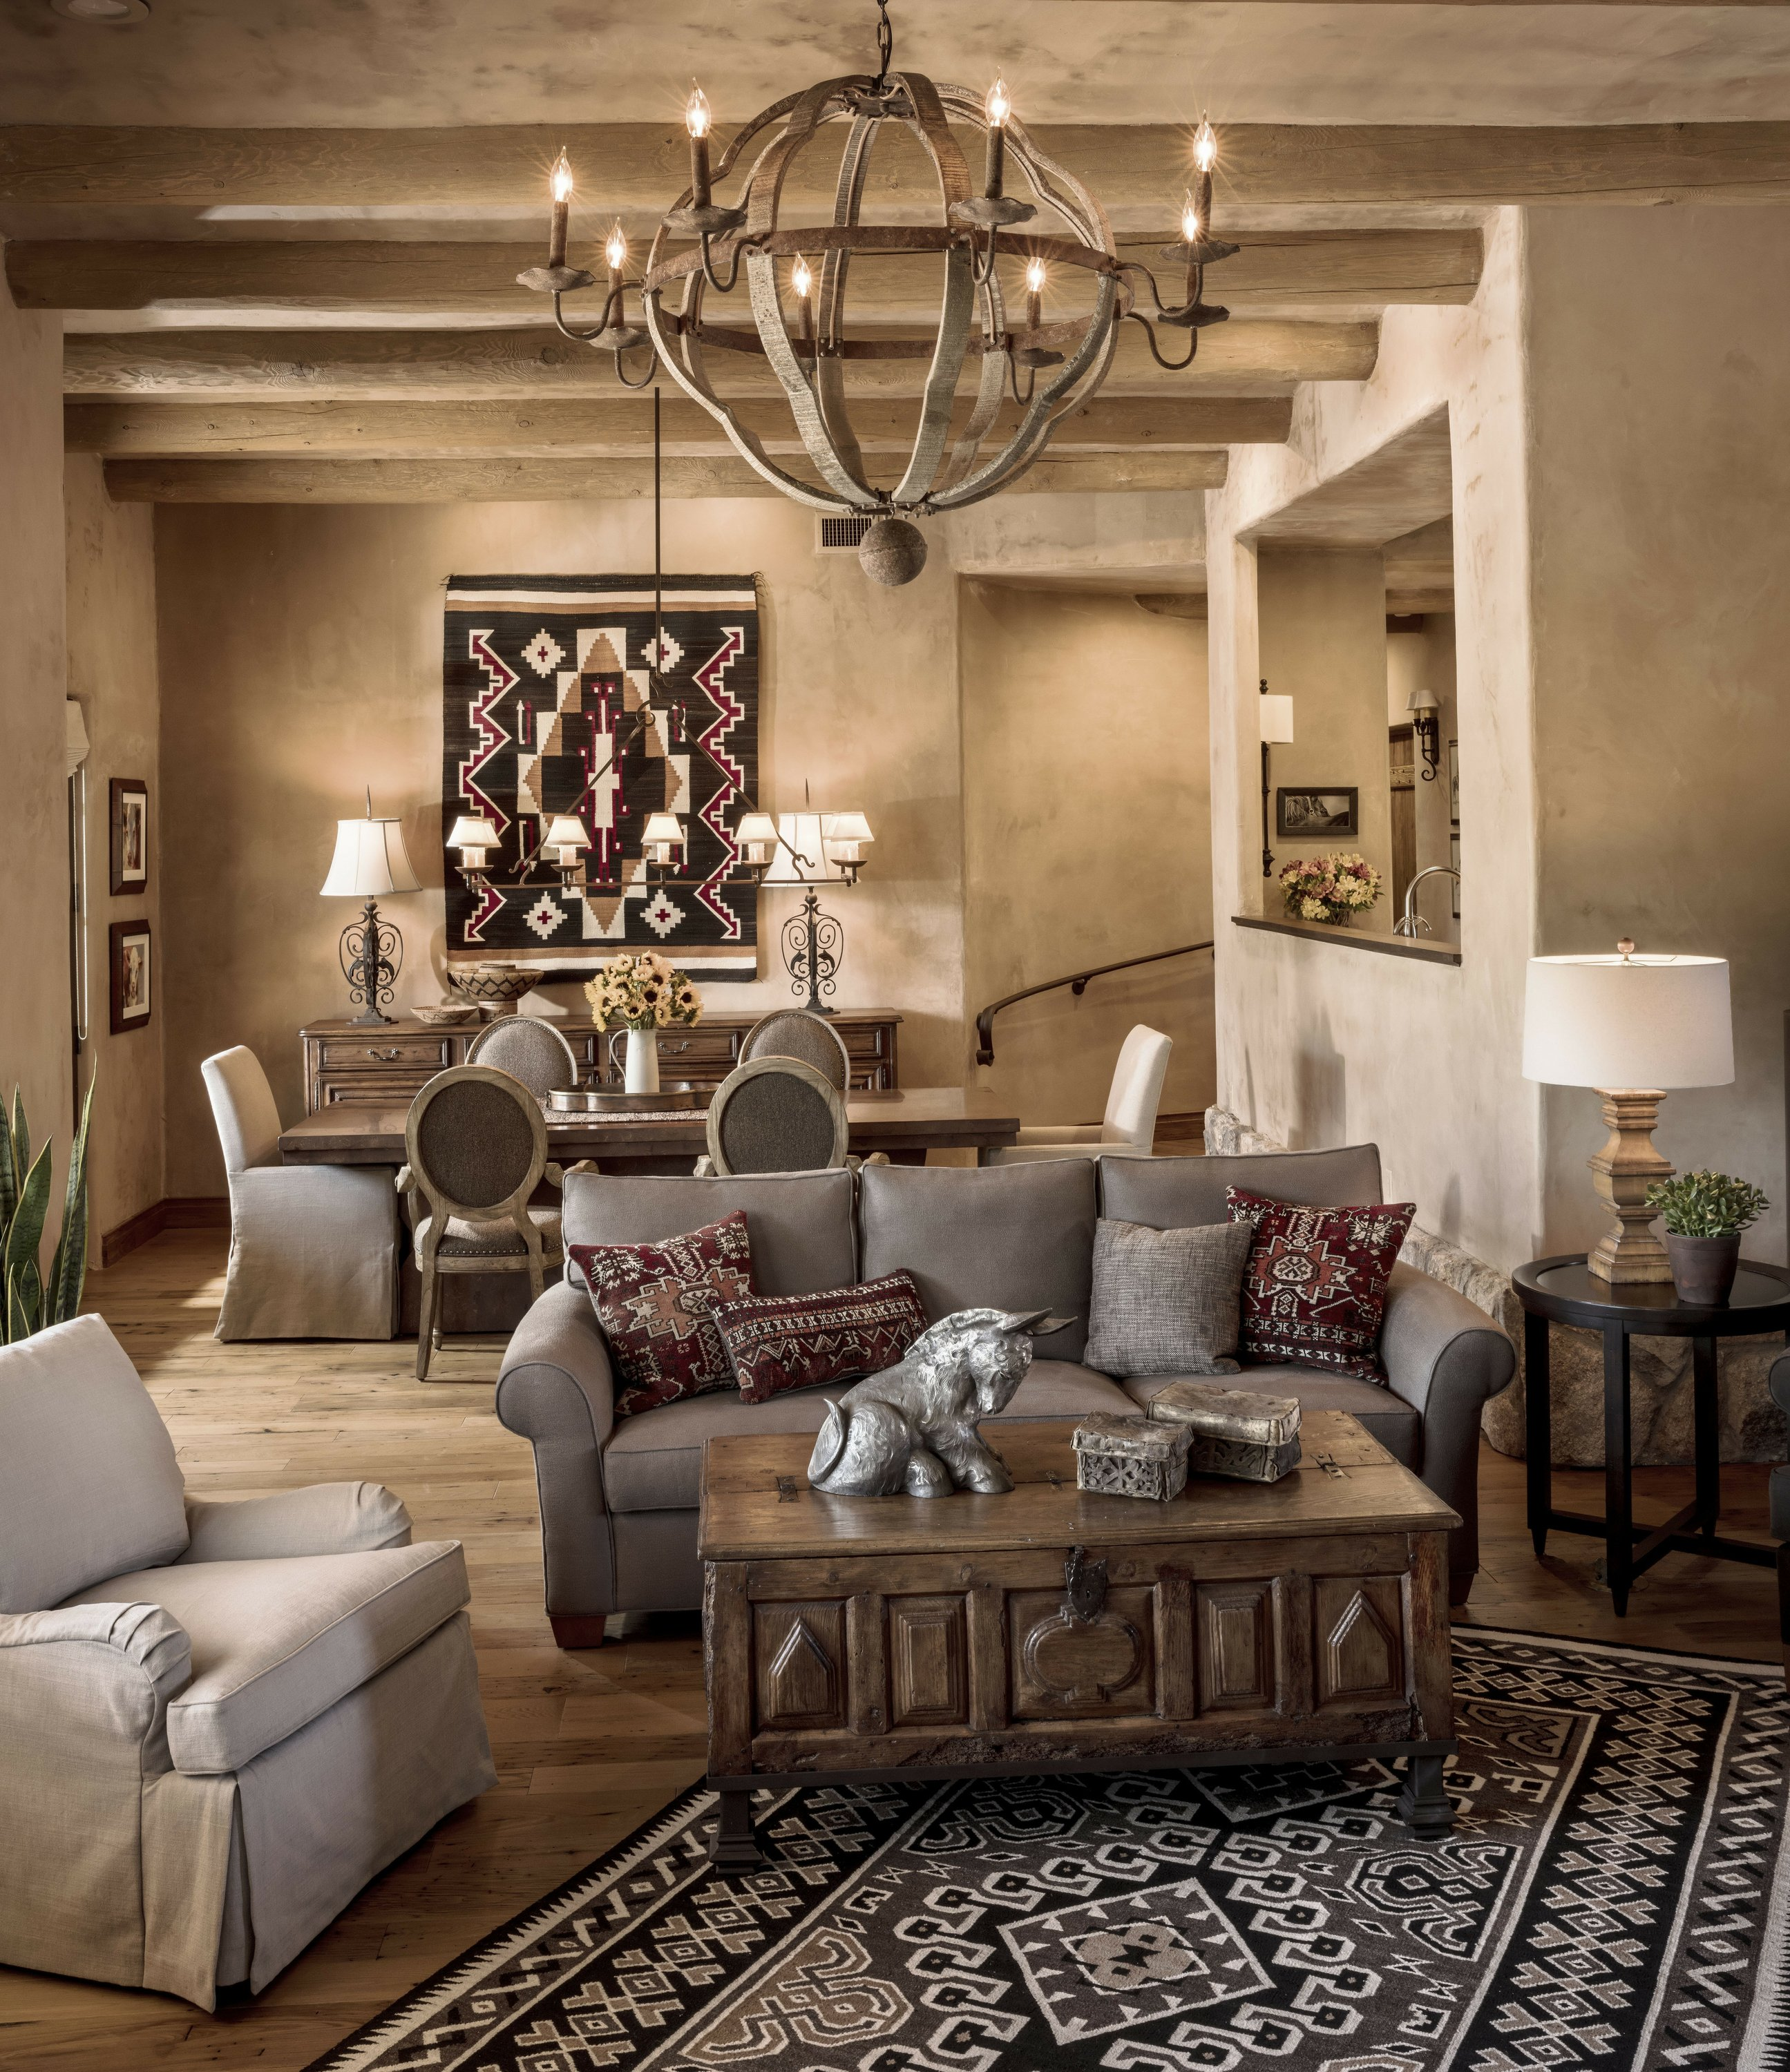 Warm and casual Southwest style is hot in decor